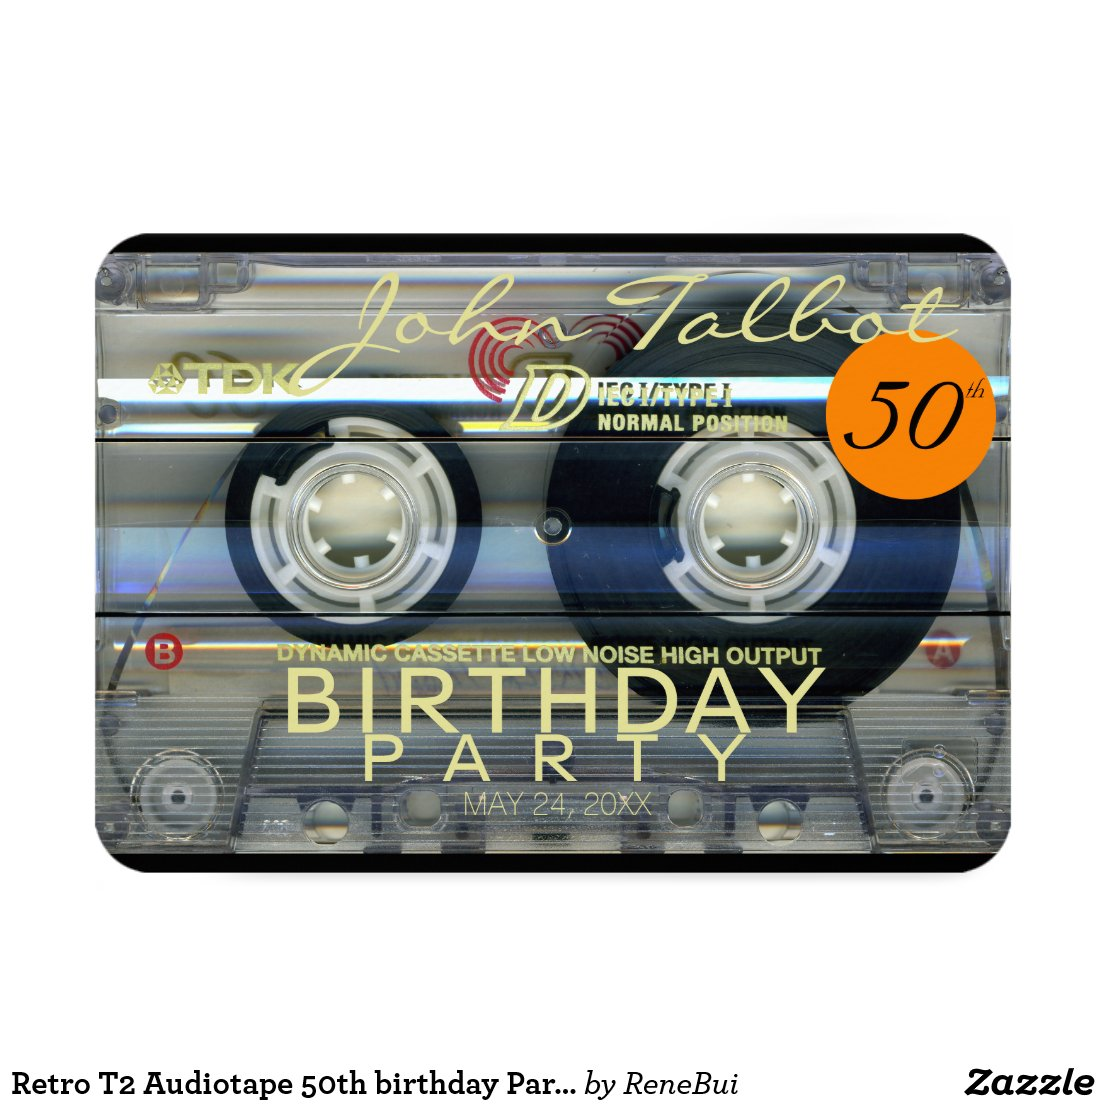 Retro T2 Audiotape 50th birthday Party Invitation